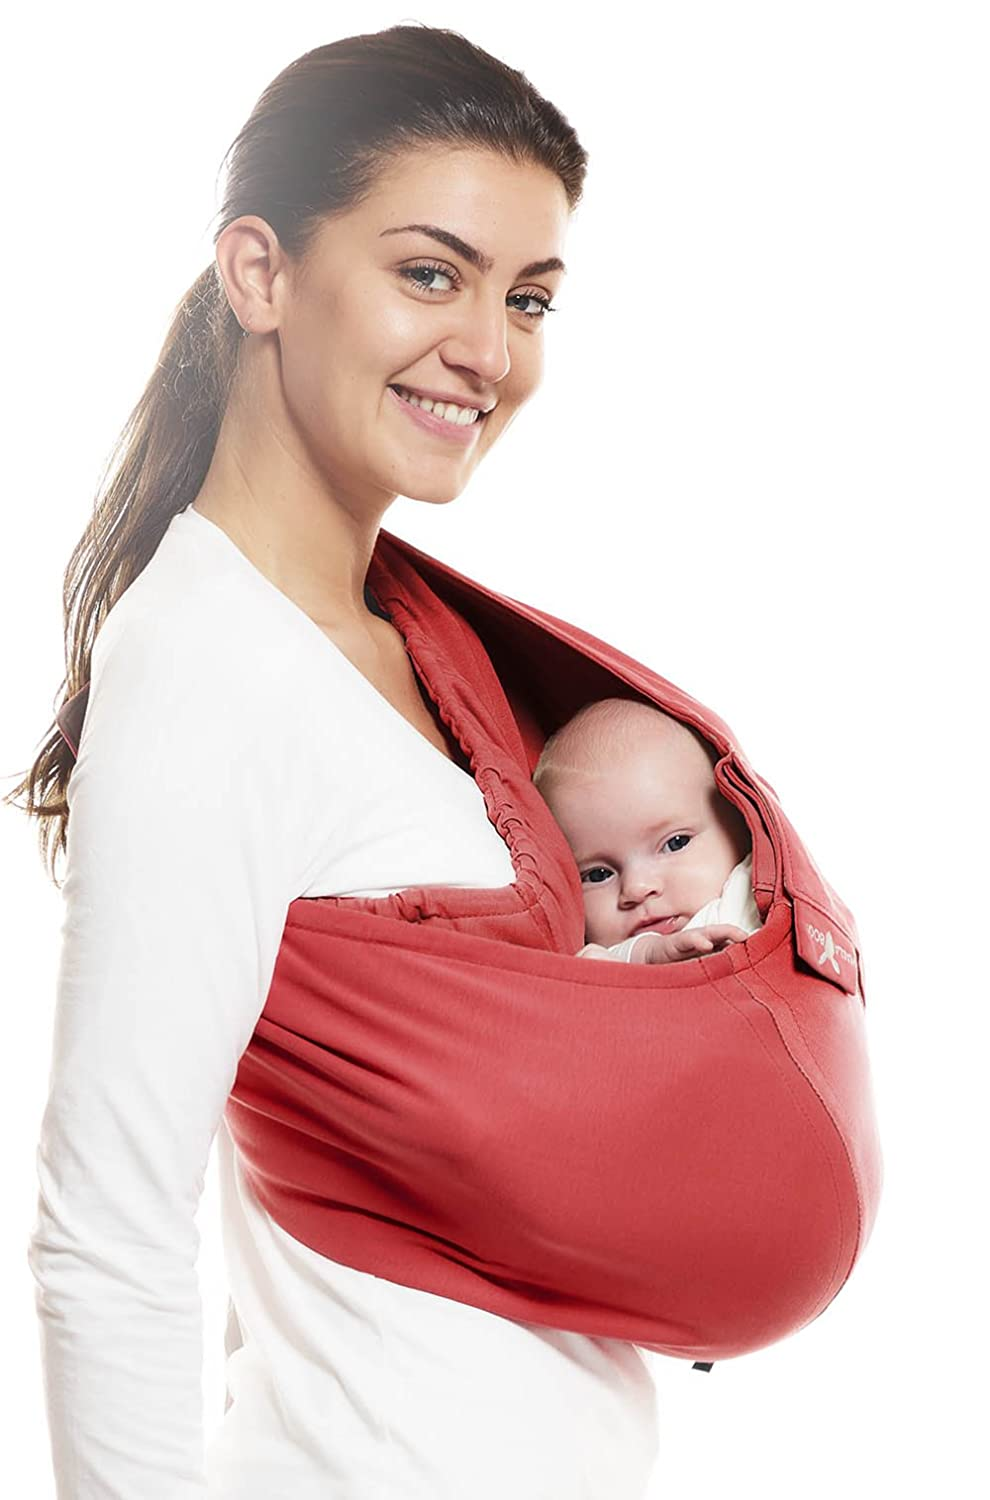 Wallaboo Baby Sling Connection, Easy Adjustable Baby Sling, One Size Fits All, Newborn and up, Adapts Perfectly to the Shape and Size of your Baby, Red - Taupe Wallaboo bv WSC.0310.1819